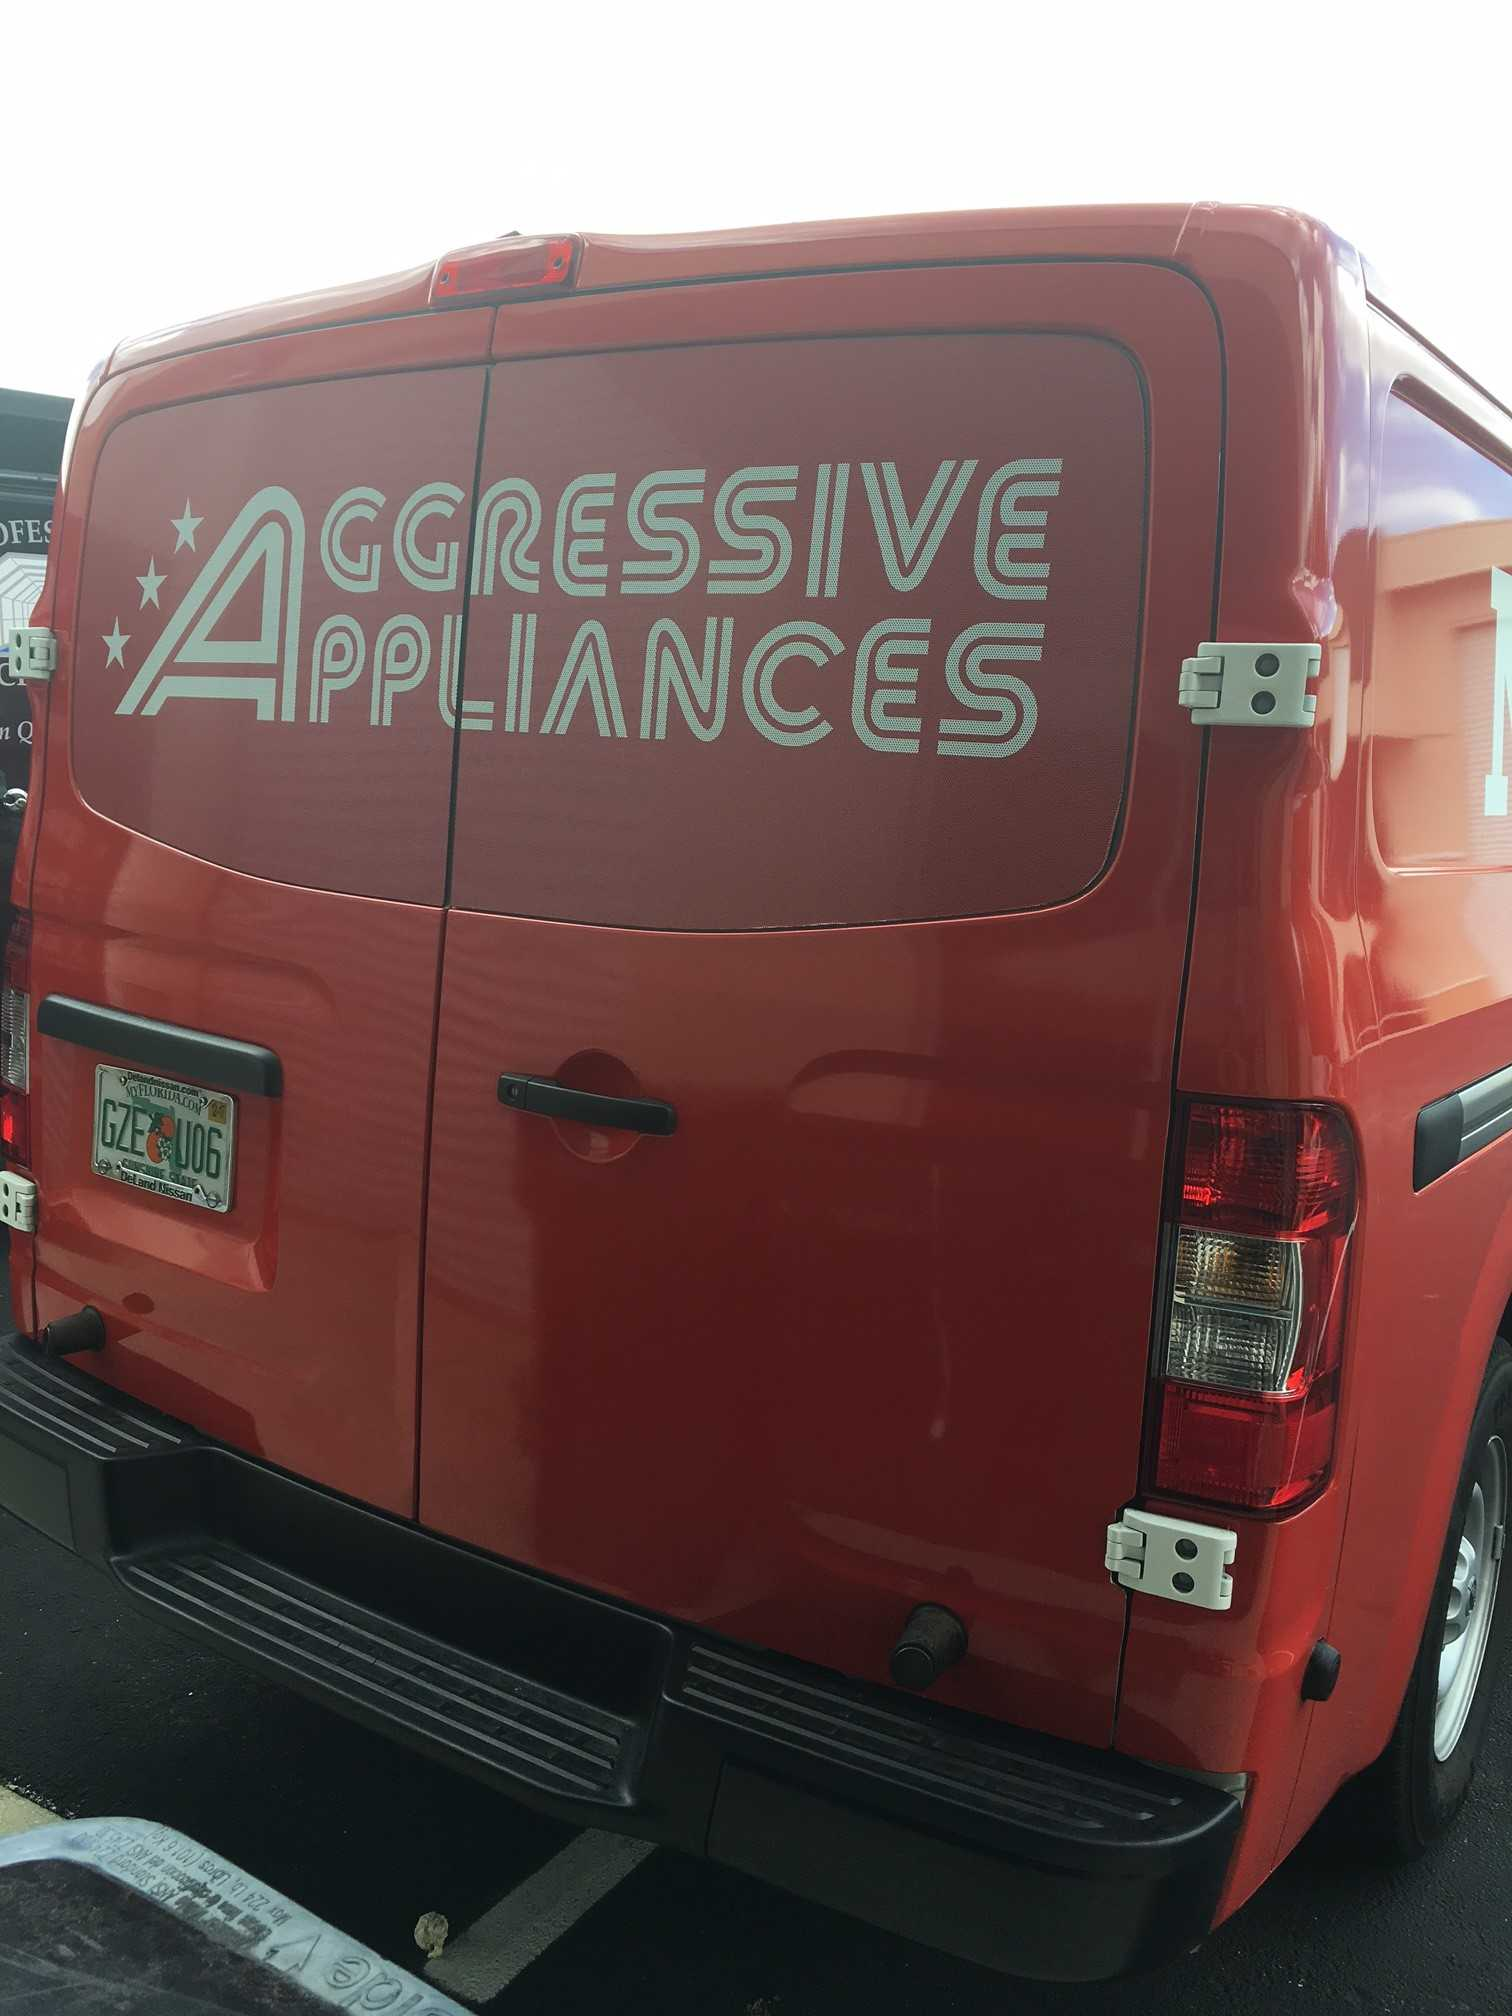 Aggressive Appliances - van red 2